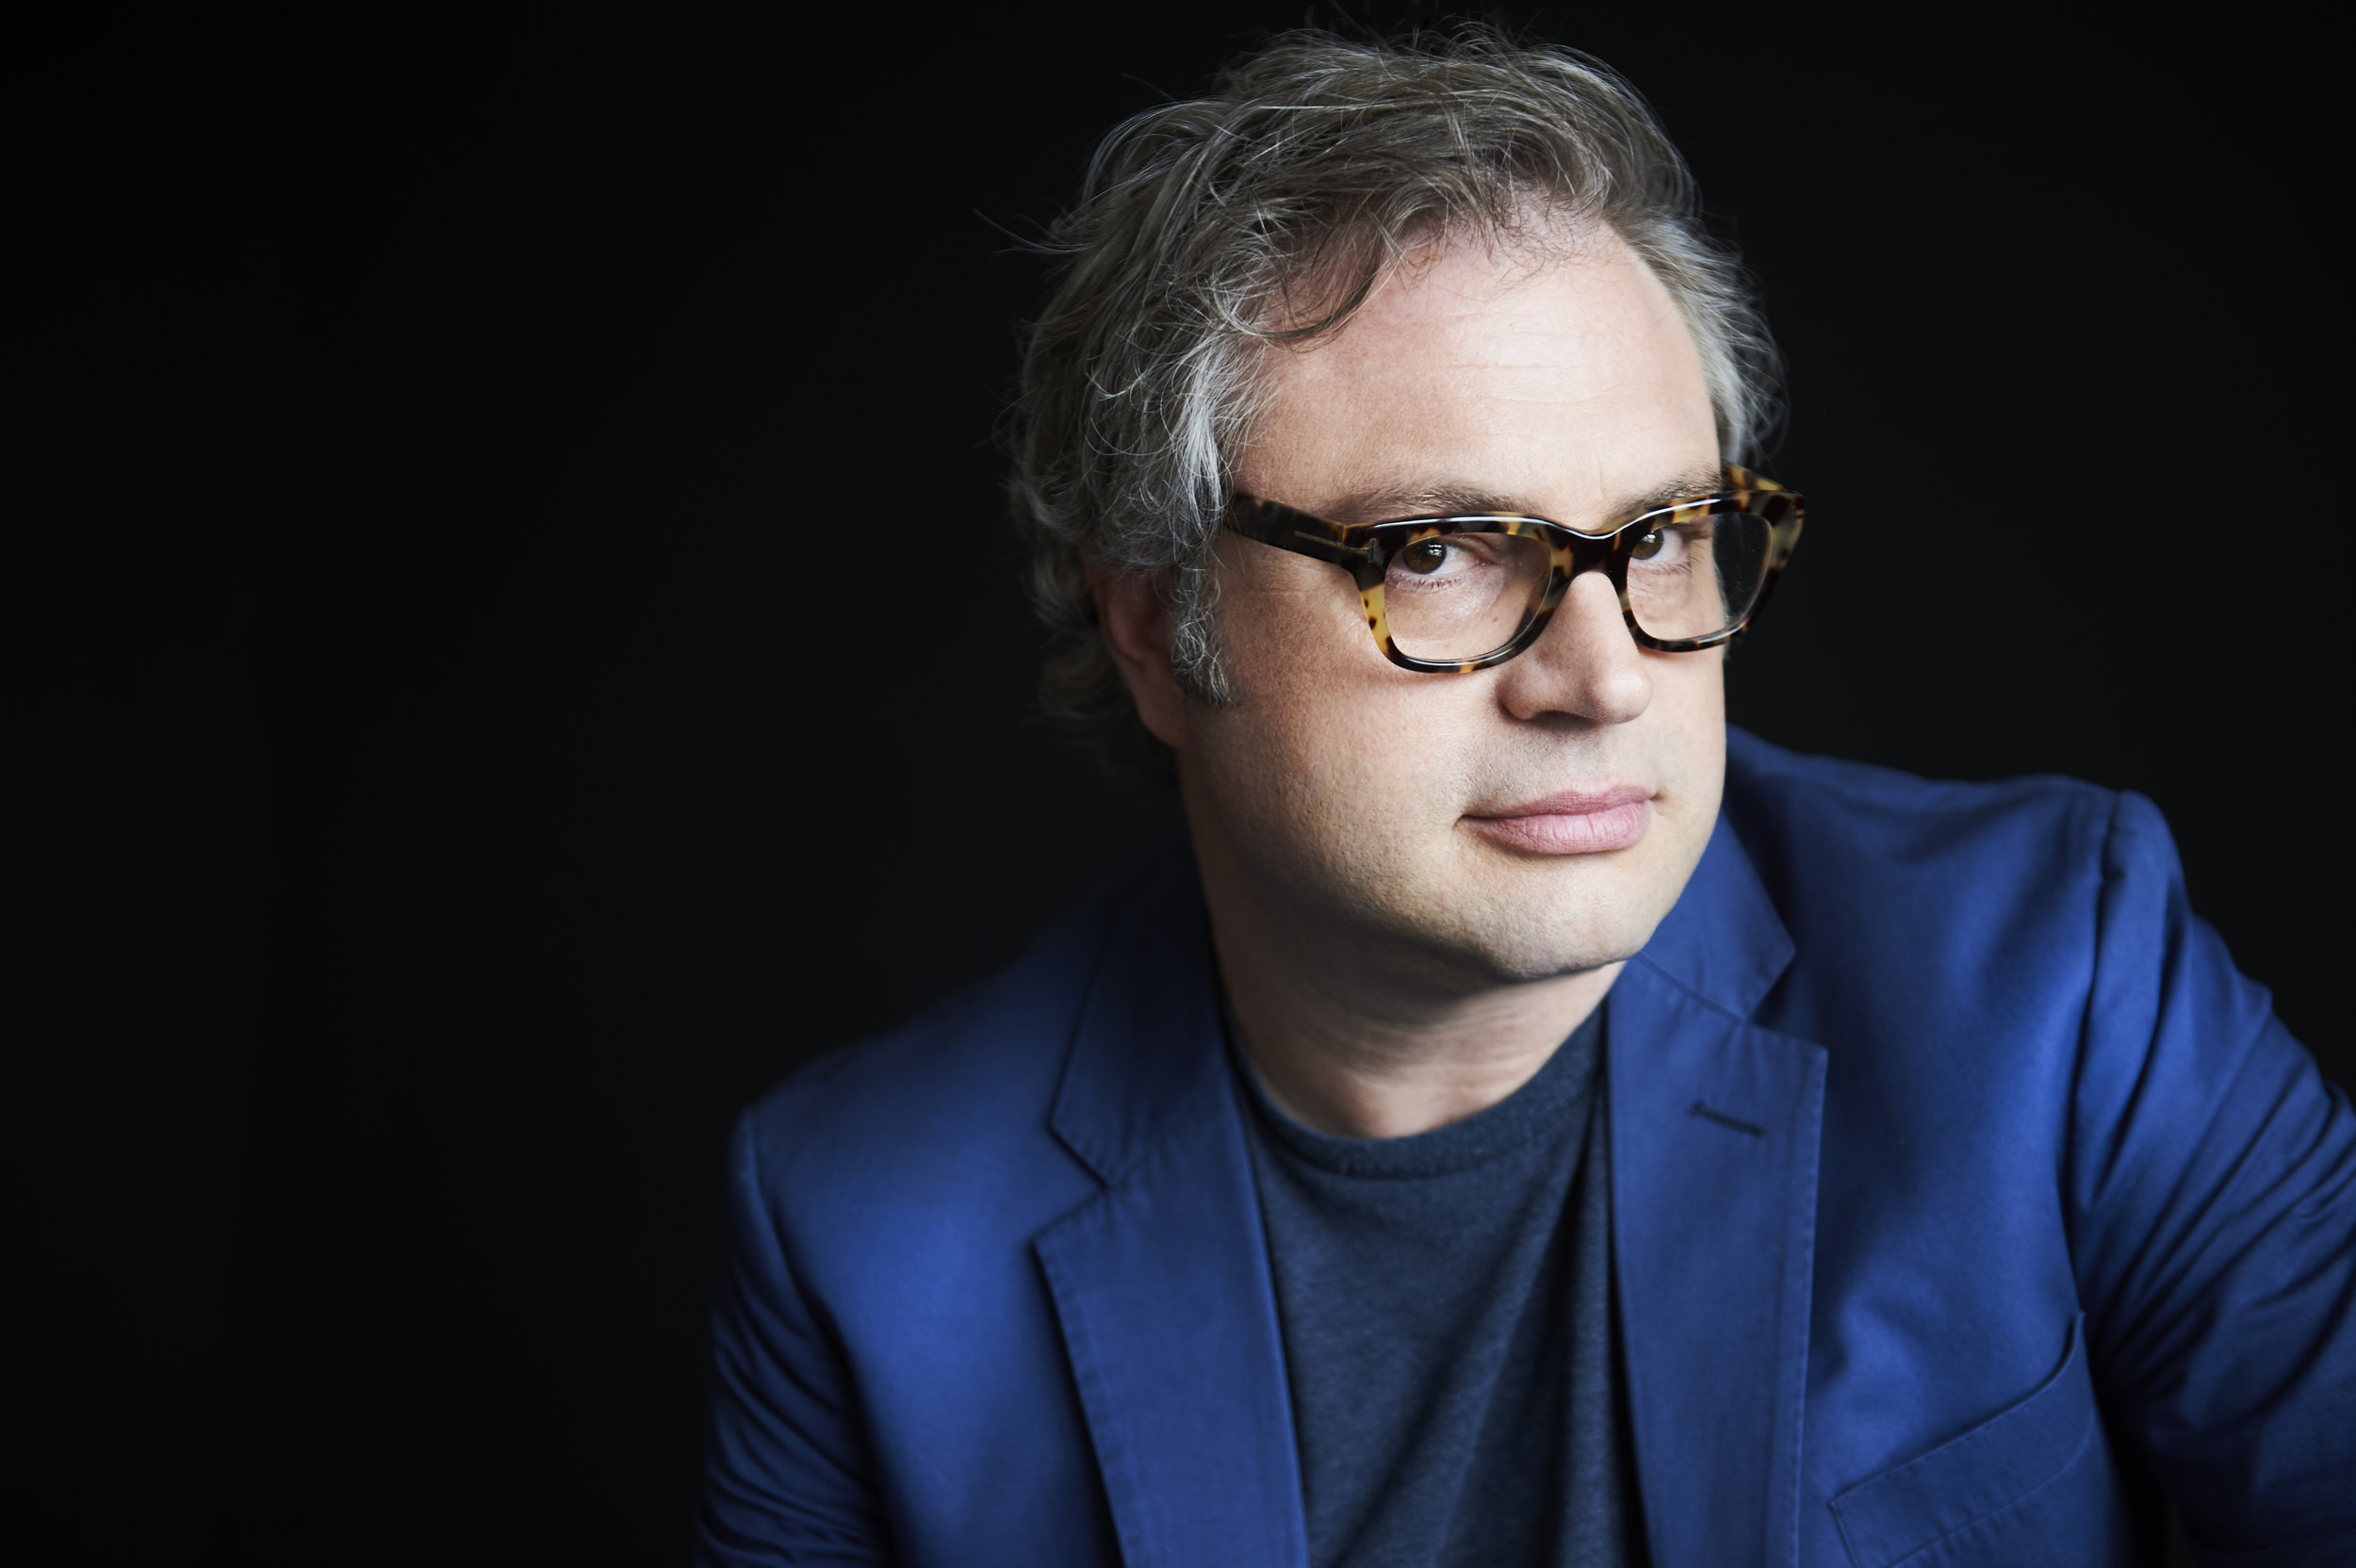 Steven Page - May 16, 2019